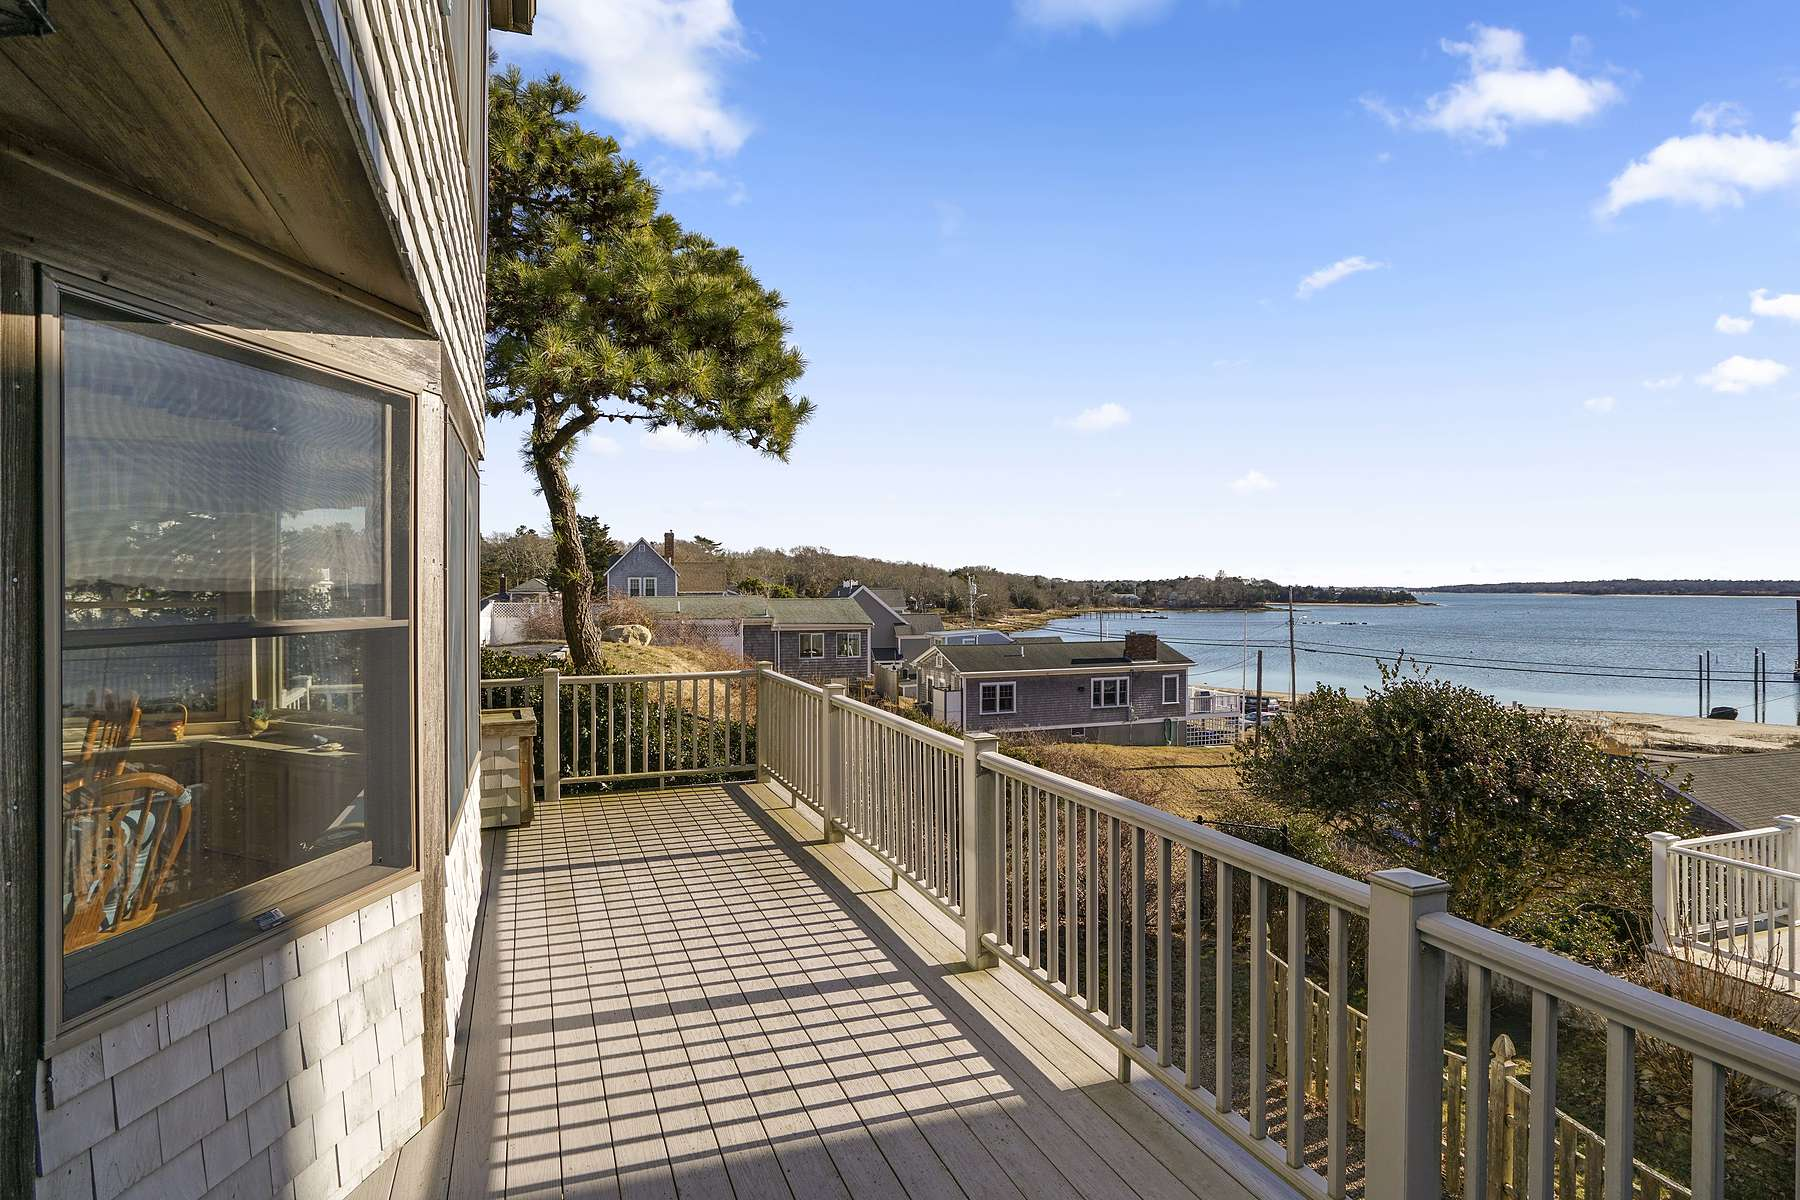 Single Family Home for Active at Overlooking The Ocean And Beach 22 Park Street Bourne, Massachusetts 02559 United States